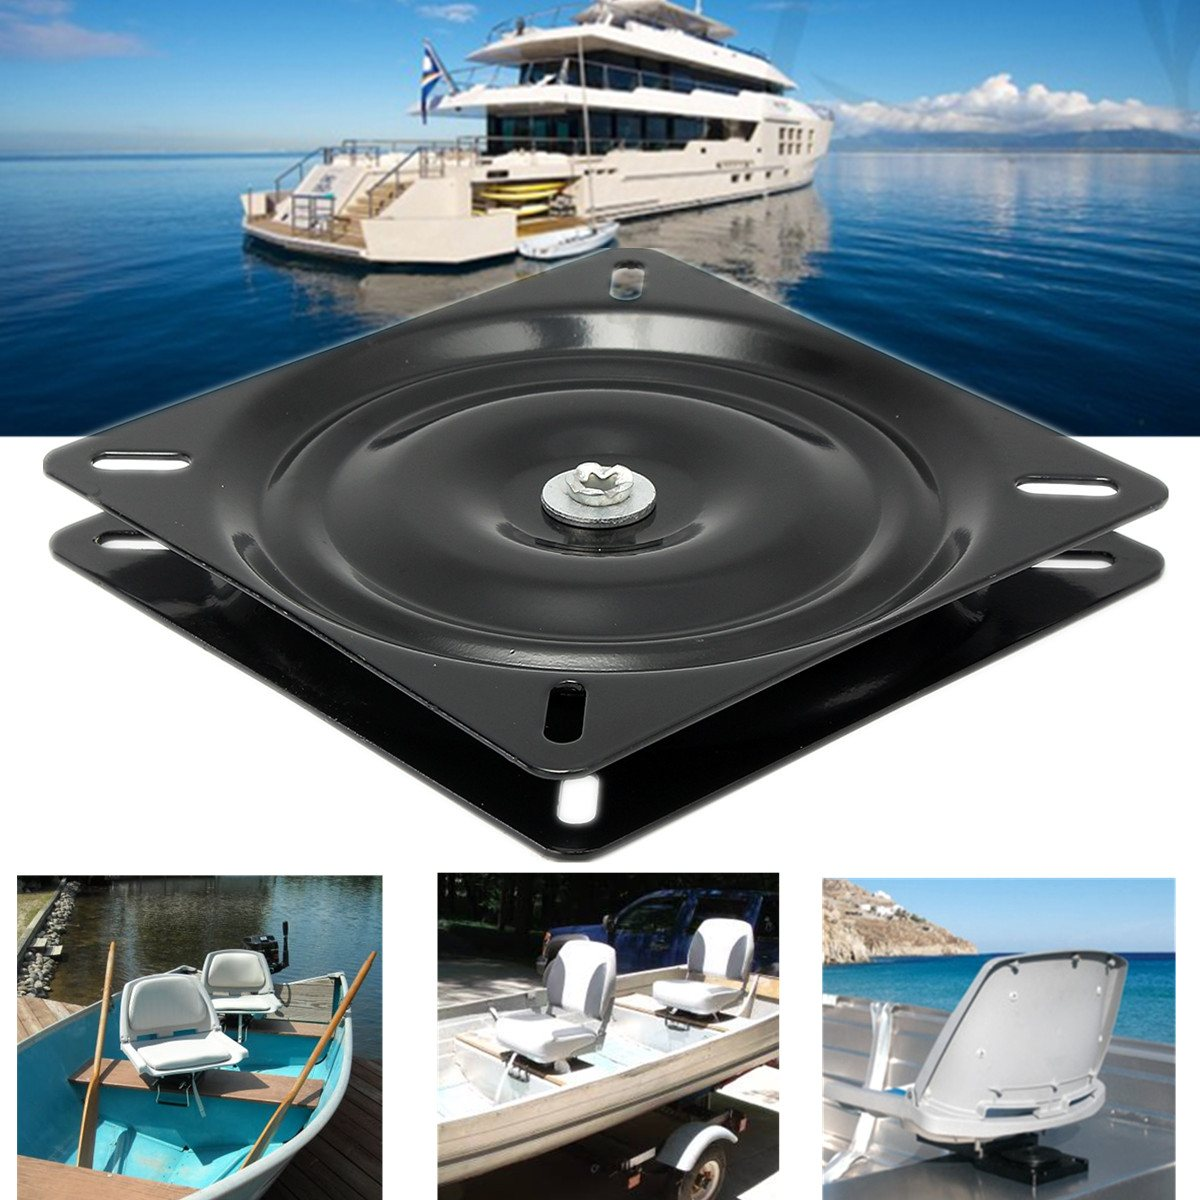 seat pedestals pedestal mount boat index with adjustable height dimensions